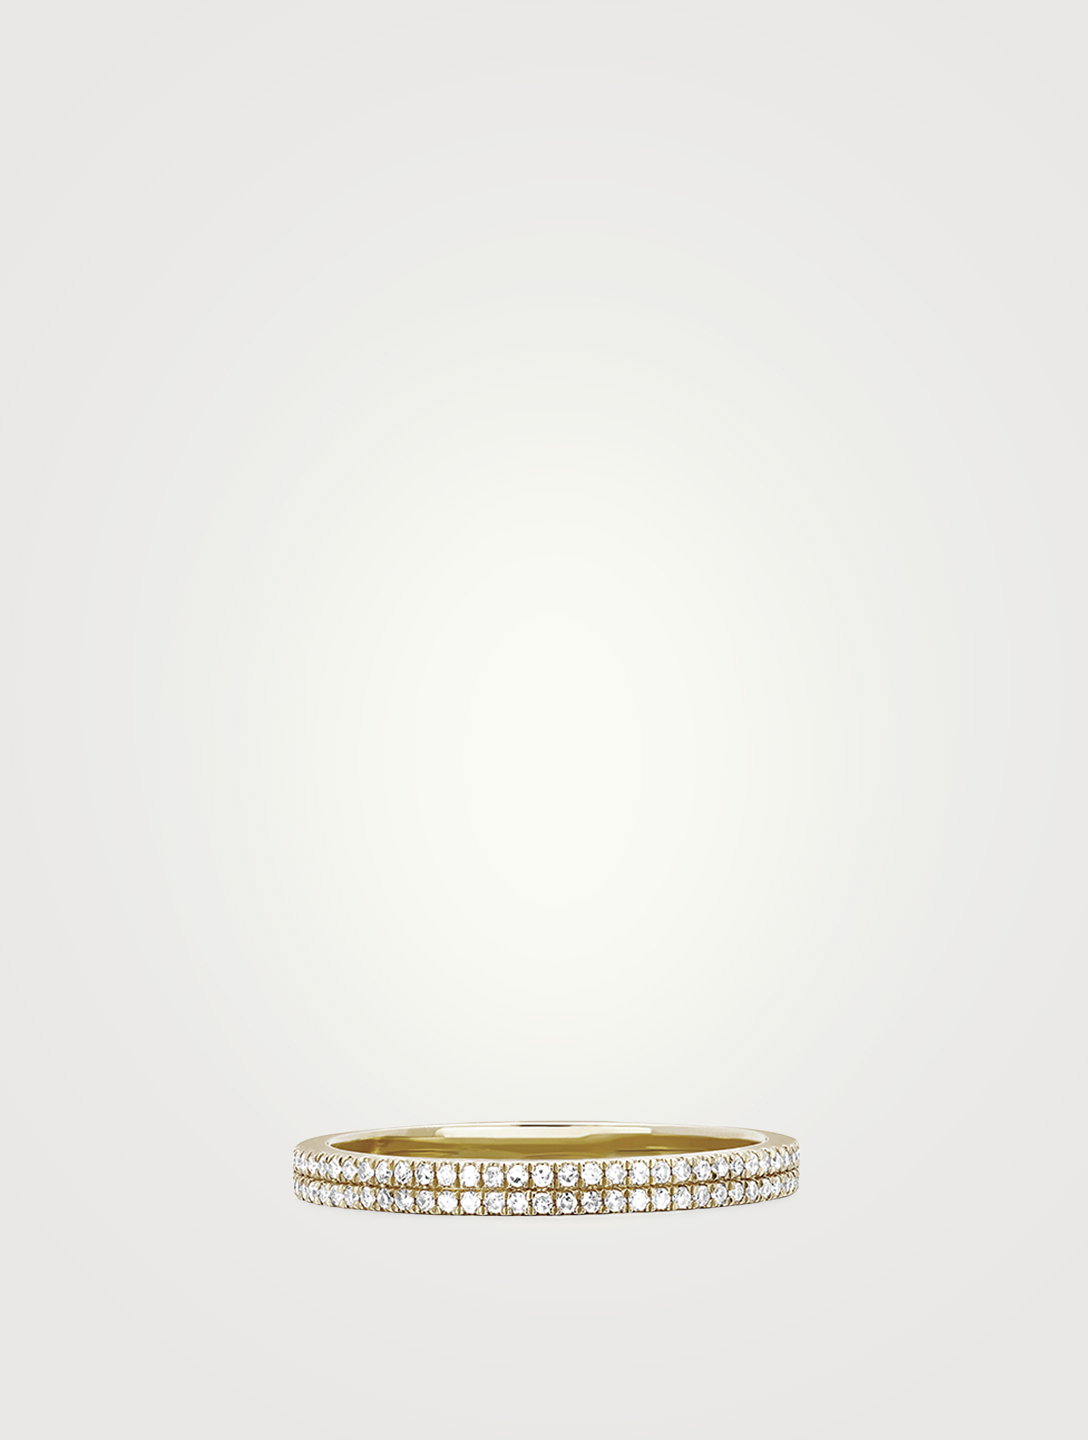 EF COLLECTION 14K Gold Double Eternity Band Ring With Diamonds Women's Metallic